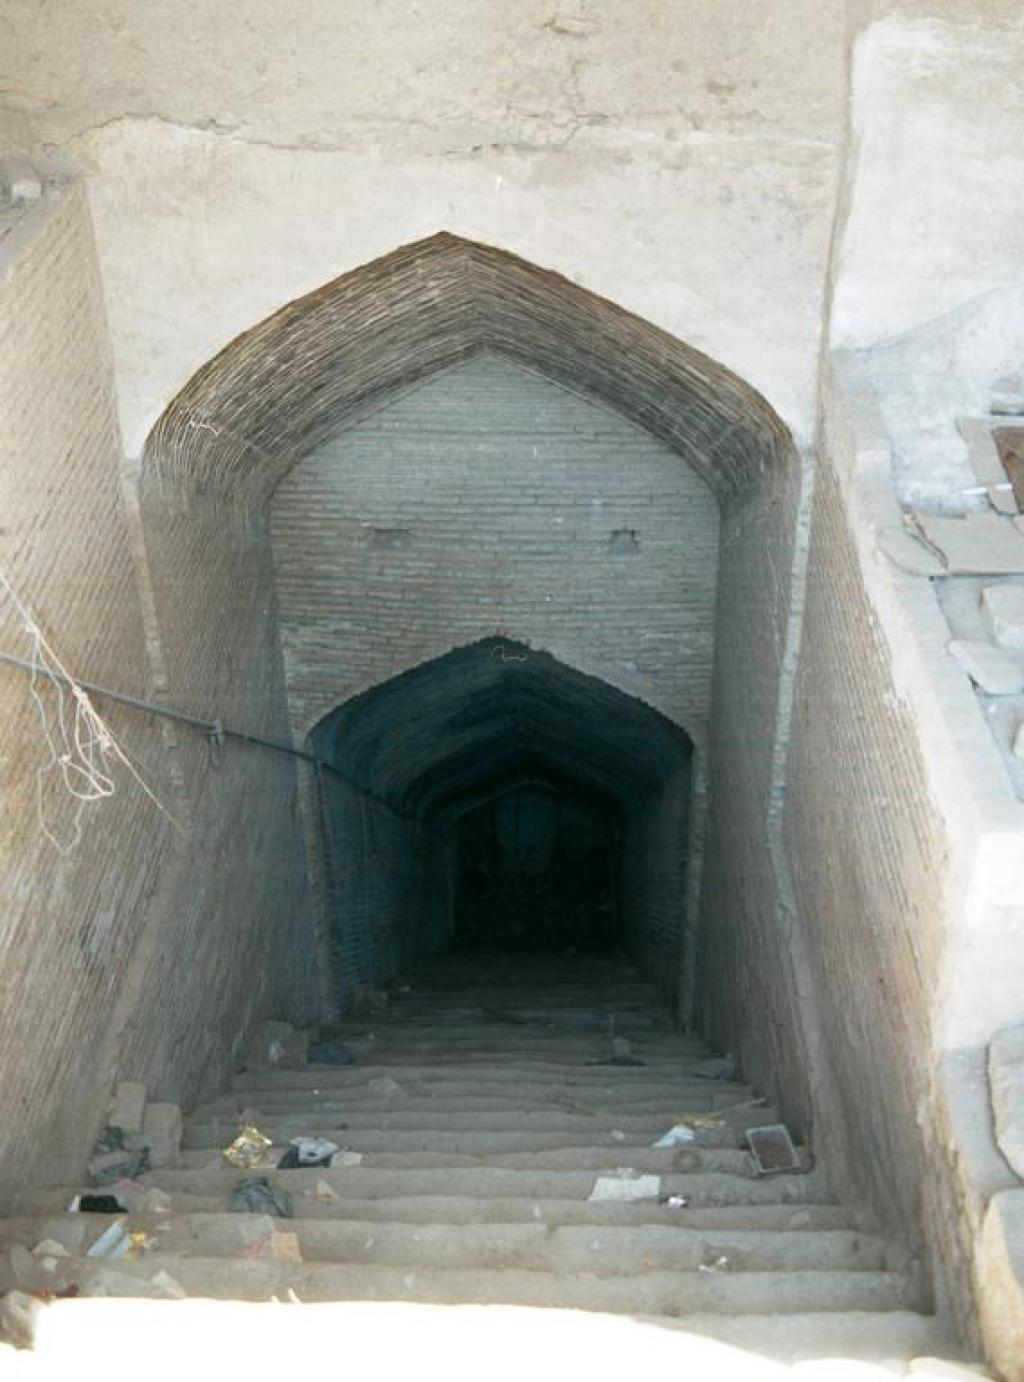 Steps leading to a 'qanat' tunnel in Kashan, Iran    Credit: Wikimedia Commons